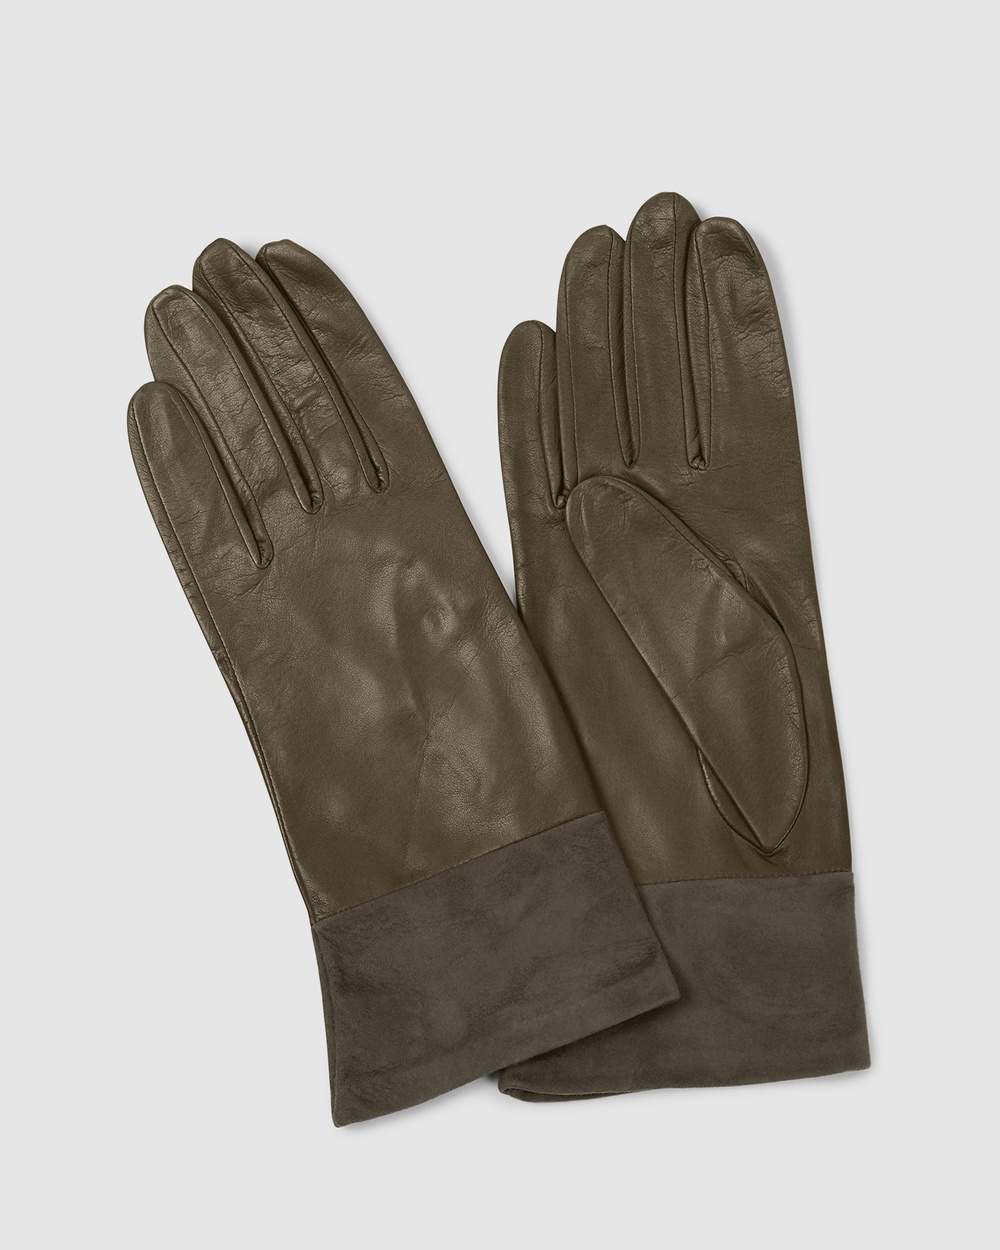 Kate & Confusion Vail Leather and Suede Gloves Outdoor Brown